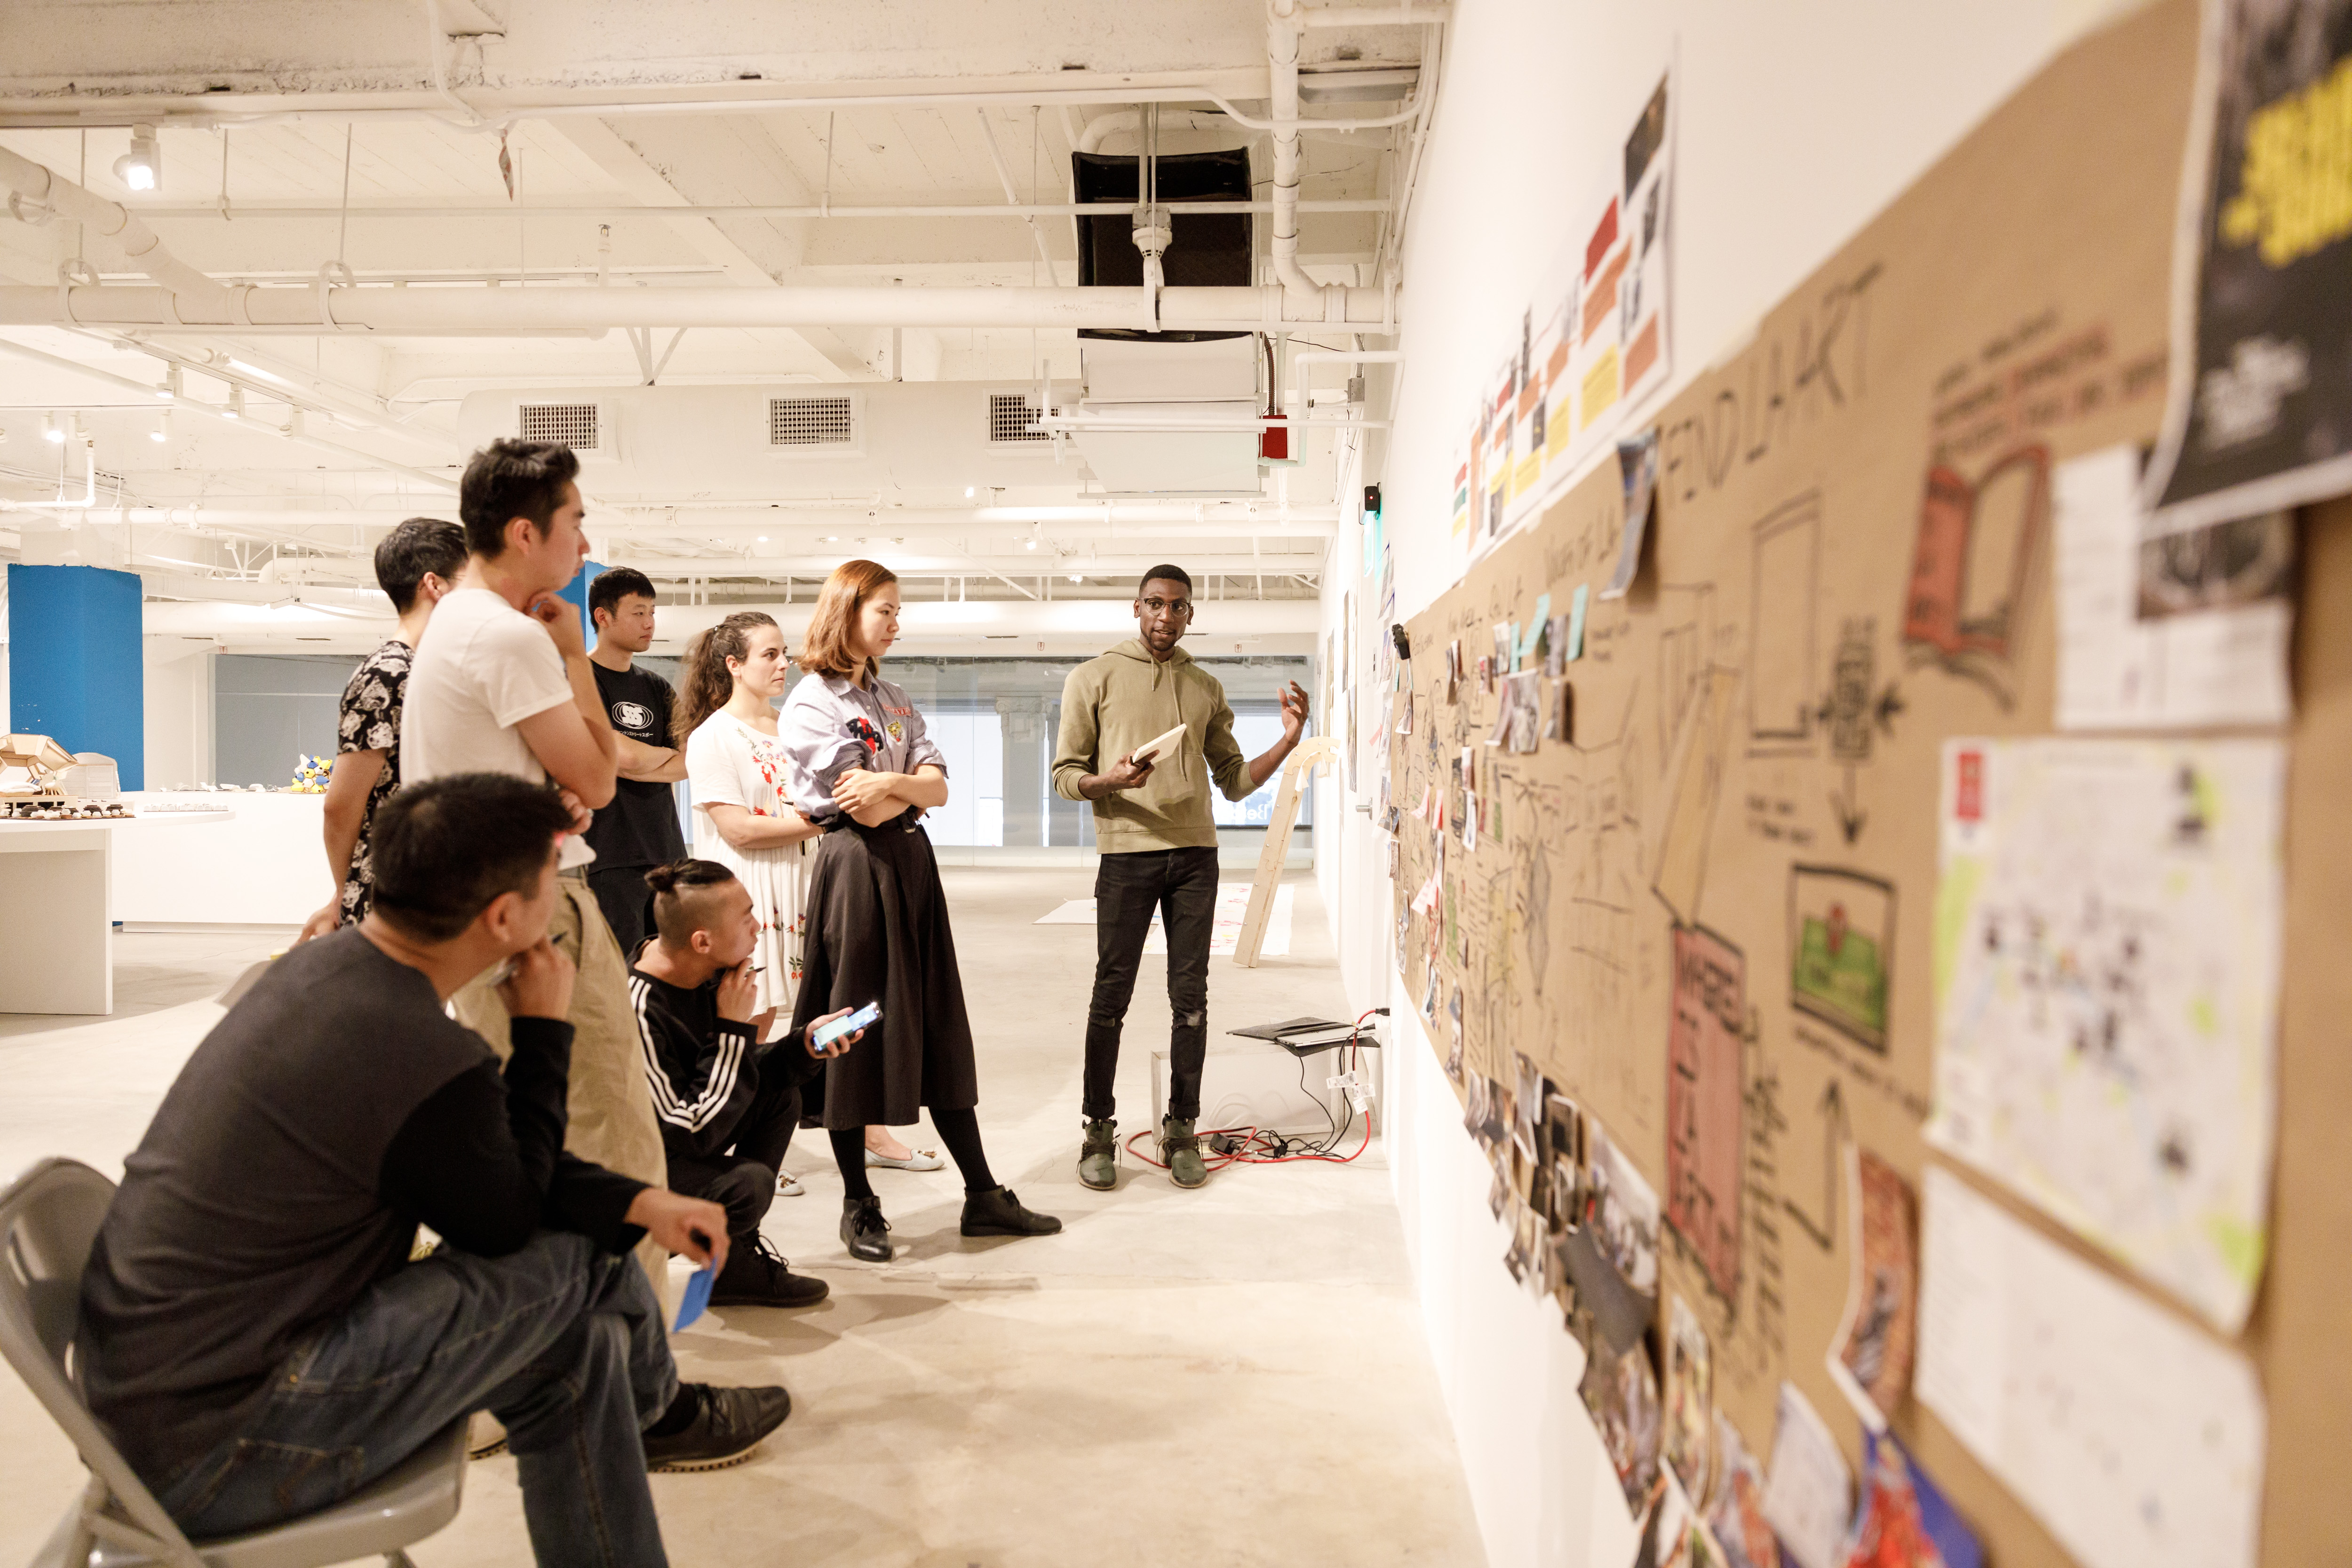 A presentation during Jeff Higashi's Design for Health and Wellbeing class held at ArtCenter DTLA. Photo by Juan Posada.